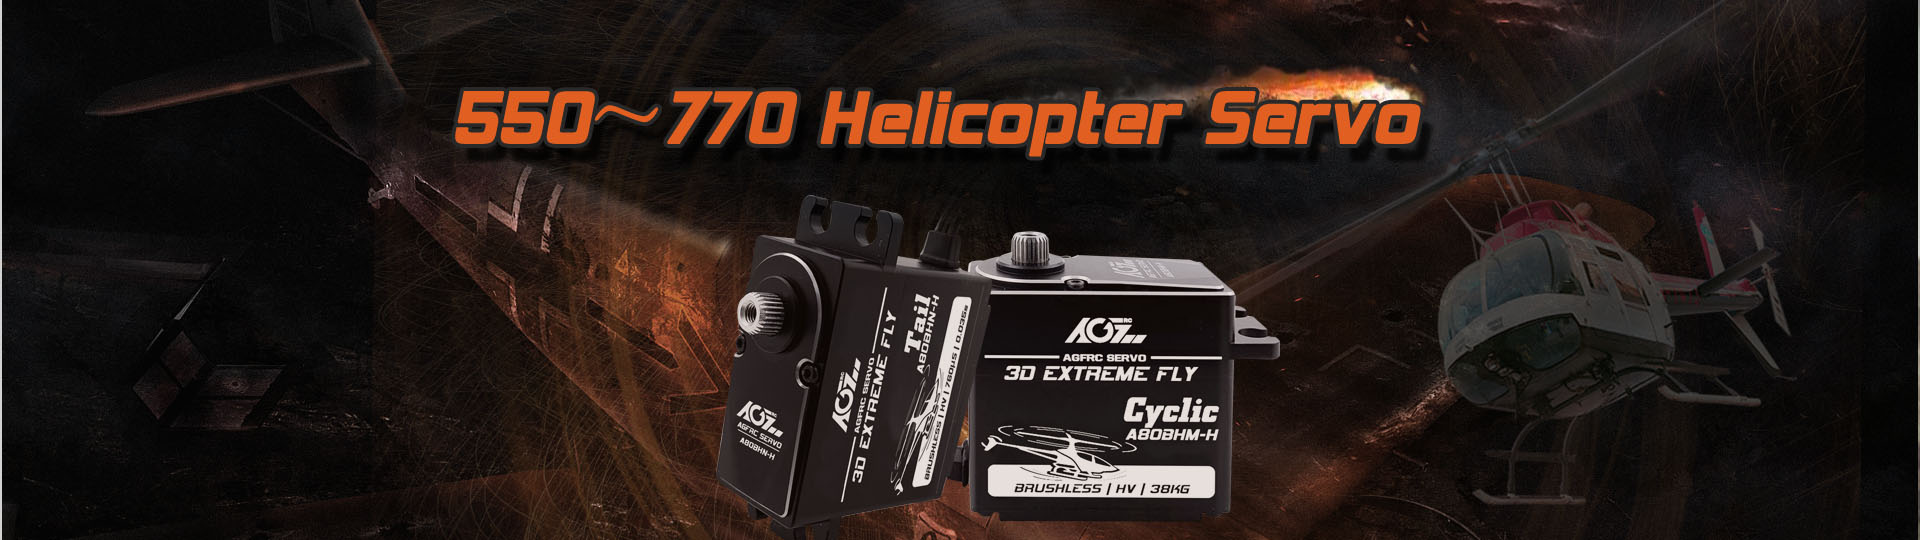 AGFrc A80BHM-H 38KG Super Torque Cyclic Servo and A80BHN-H High Speed Tail Servo for 450-770 Class RC Helicopter